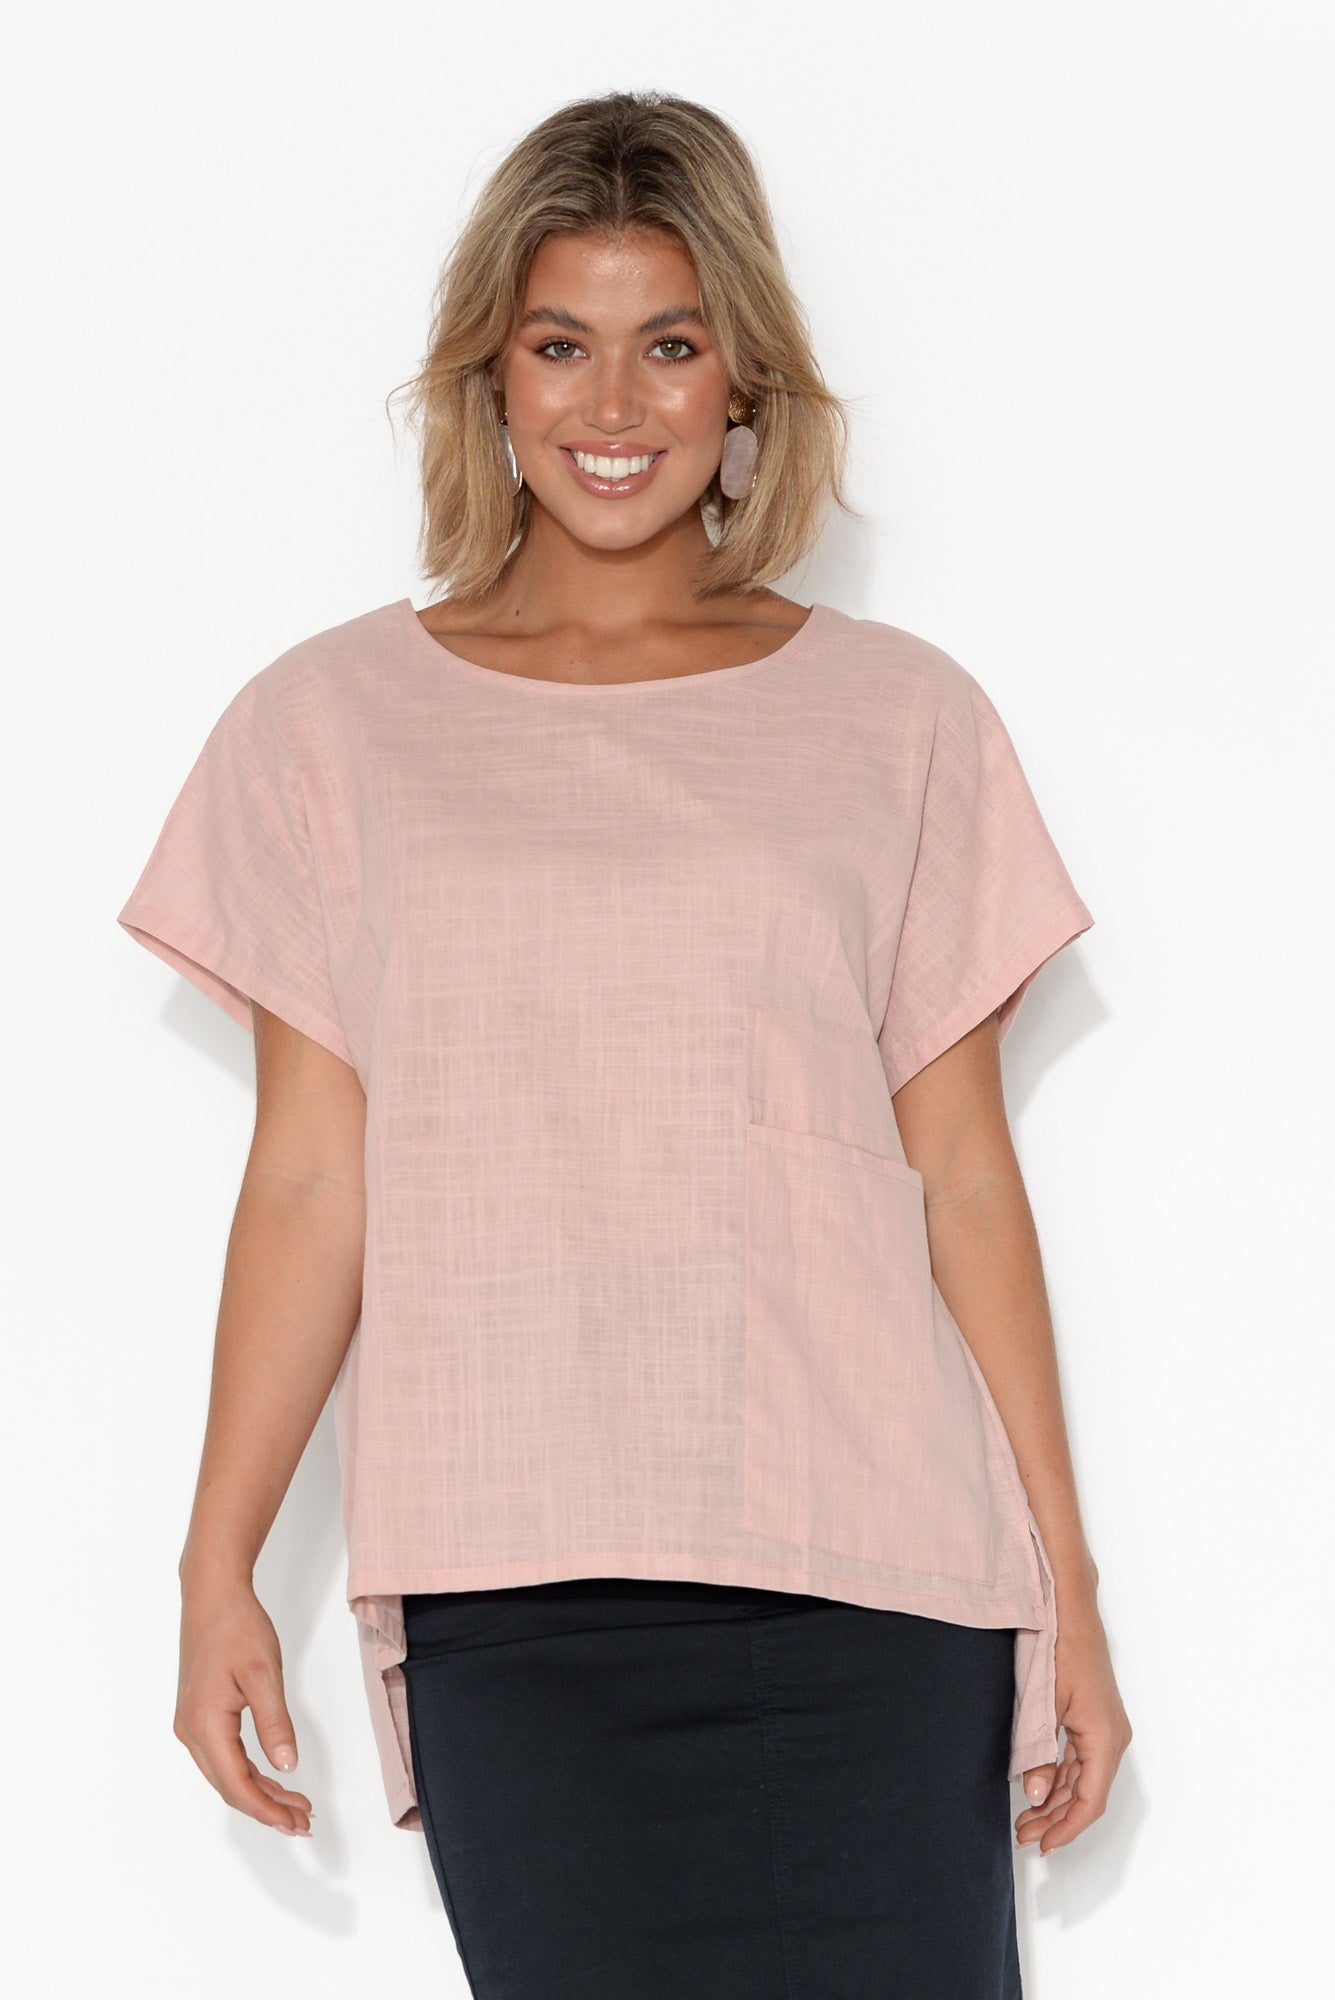 Jessica Blush Pocket Top